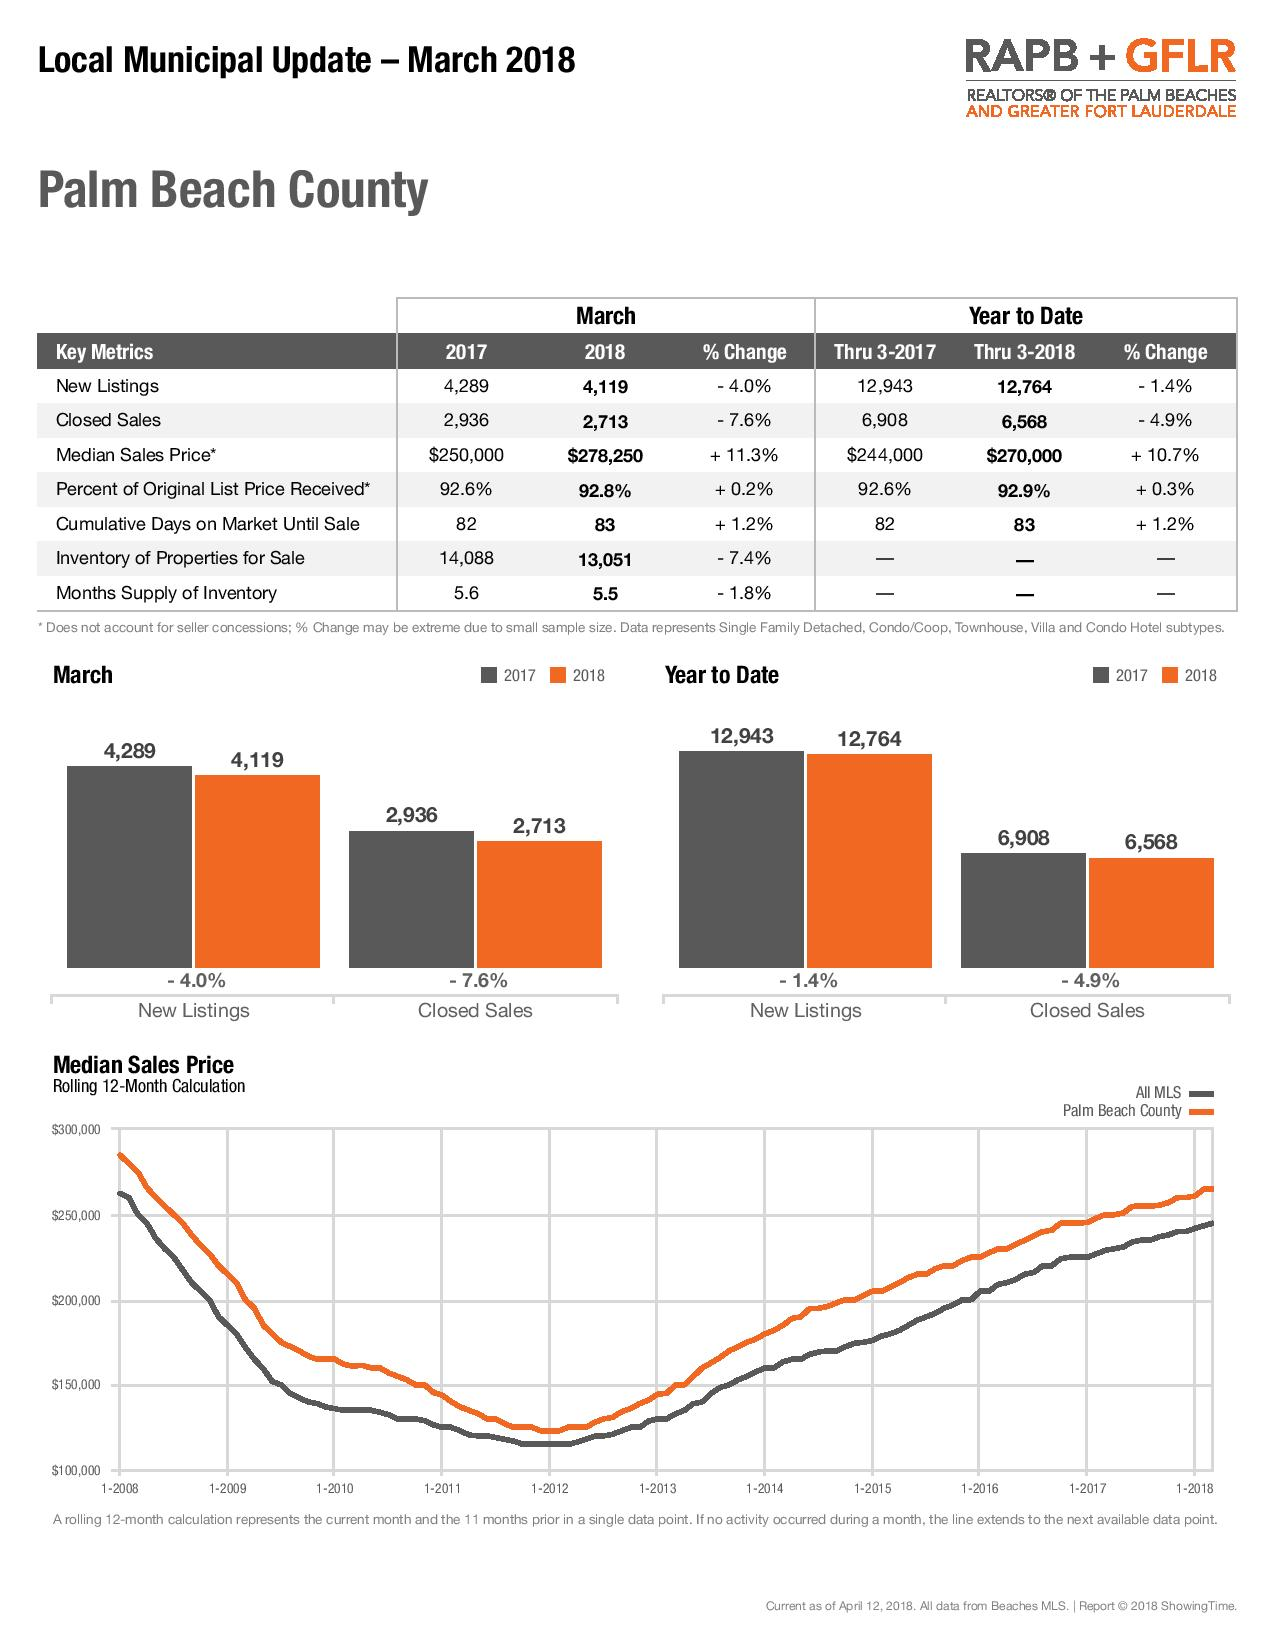 Palm Beach Statistics for March 2018